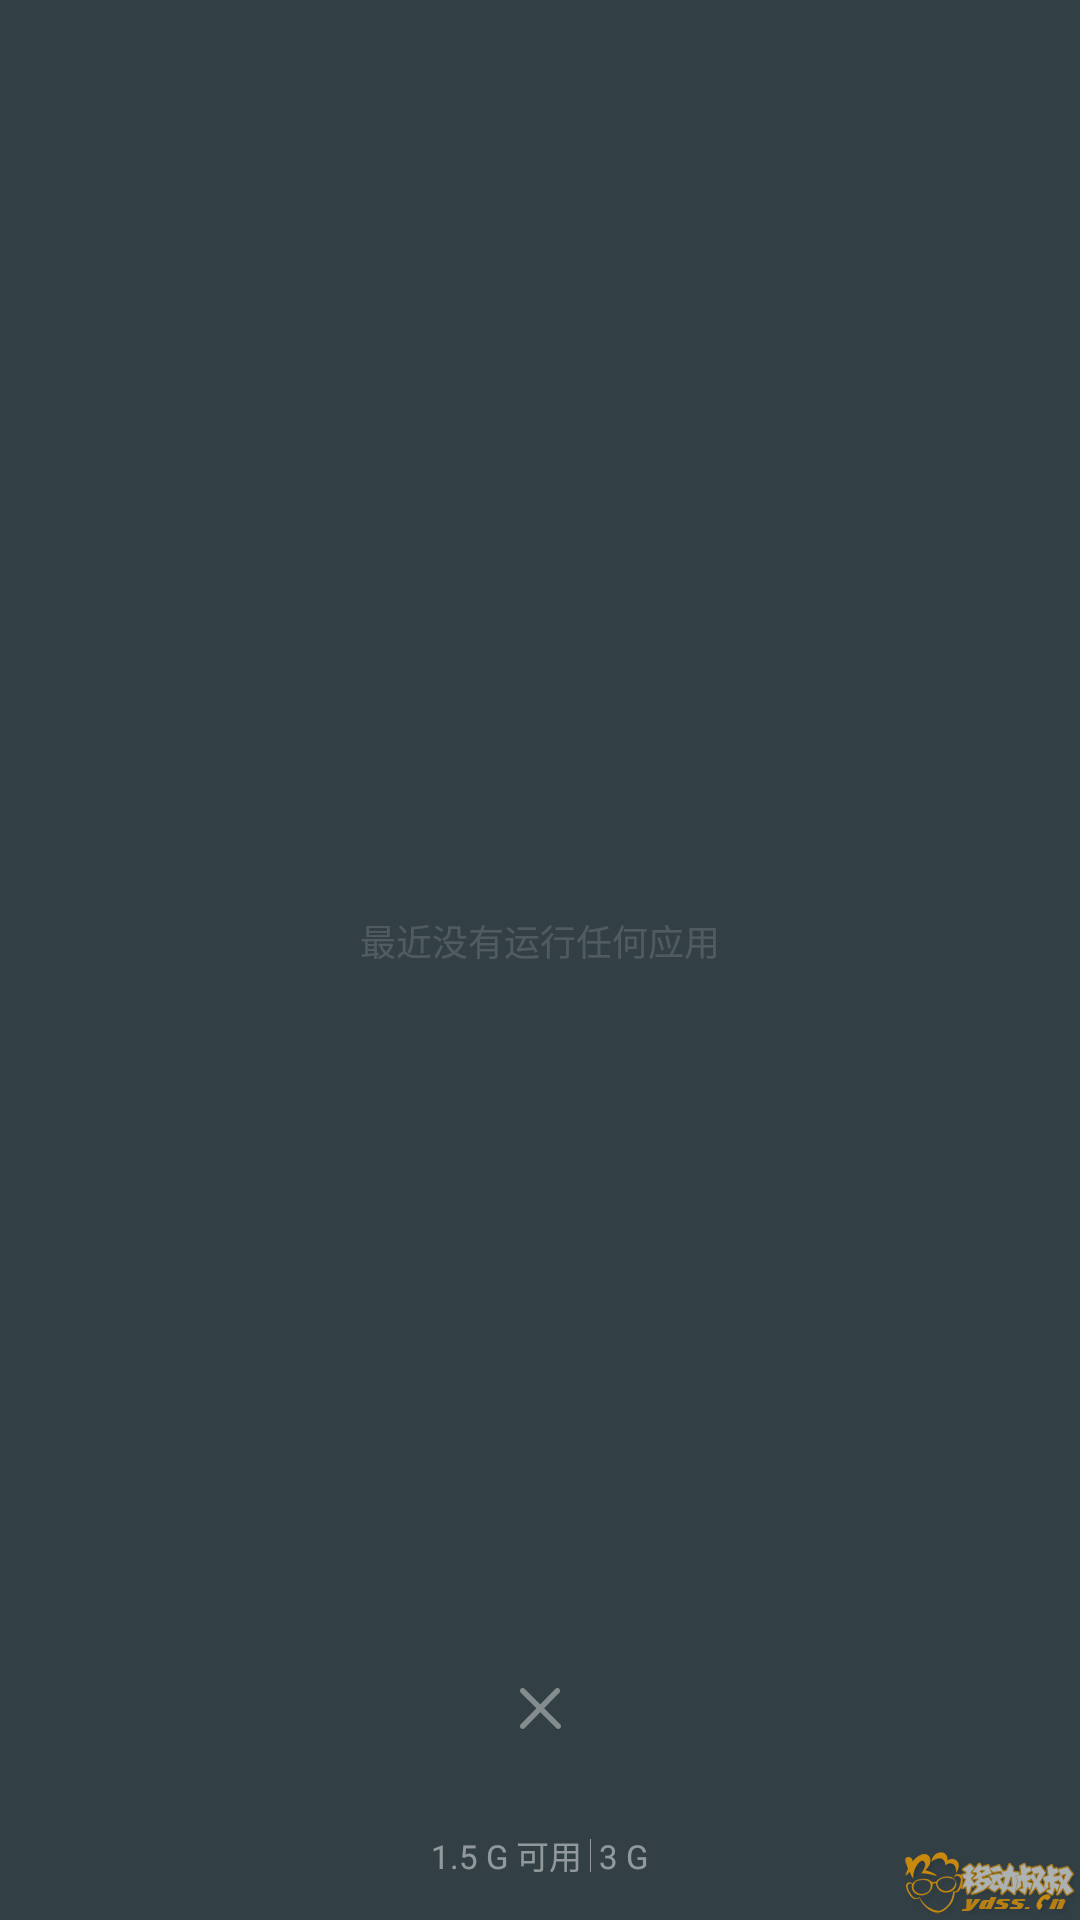 Screenshot_2015-01-01-00-07-03-595_com.miui.home.png